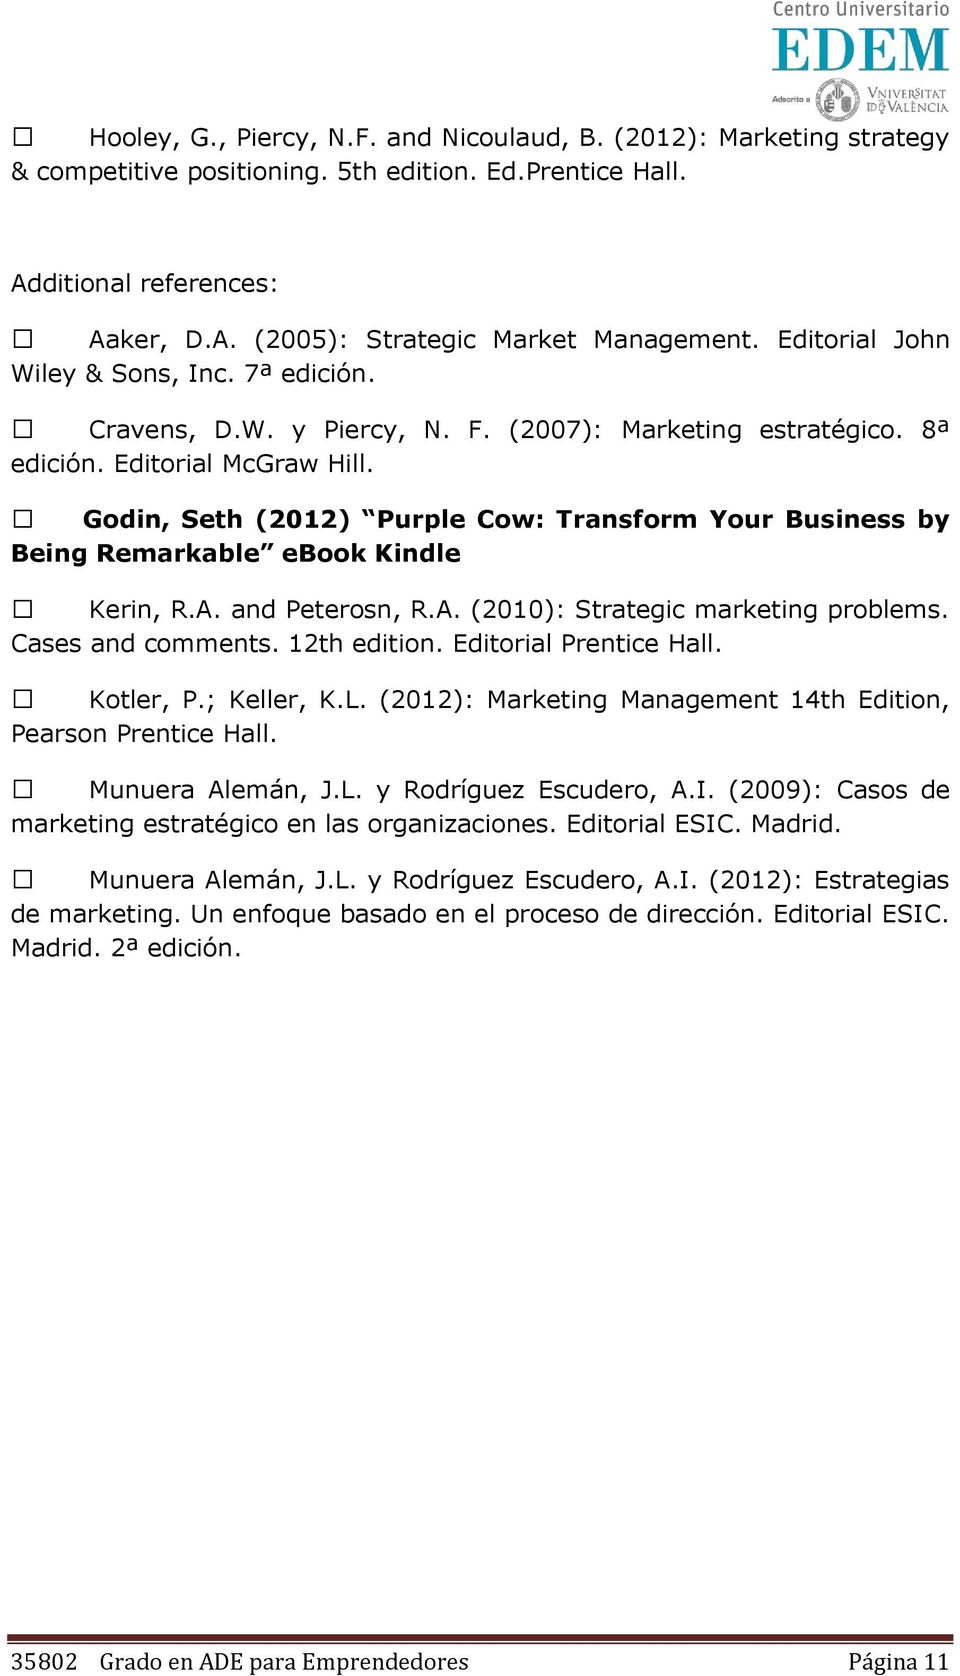 Godin, Seth (2012) Purple Cow: Transform Your Business by Being Remarkable ebook Kindle Kerin, R.A. and Peterosn, R.A. (2010): Strategic marketing problems. Cases and comments. 12th edition.